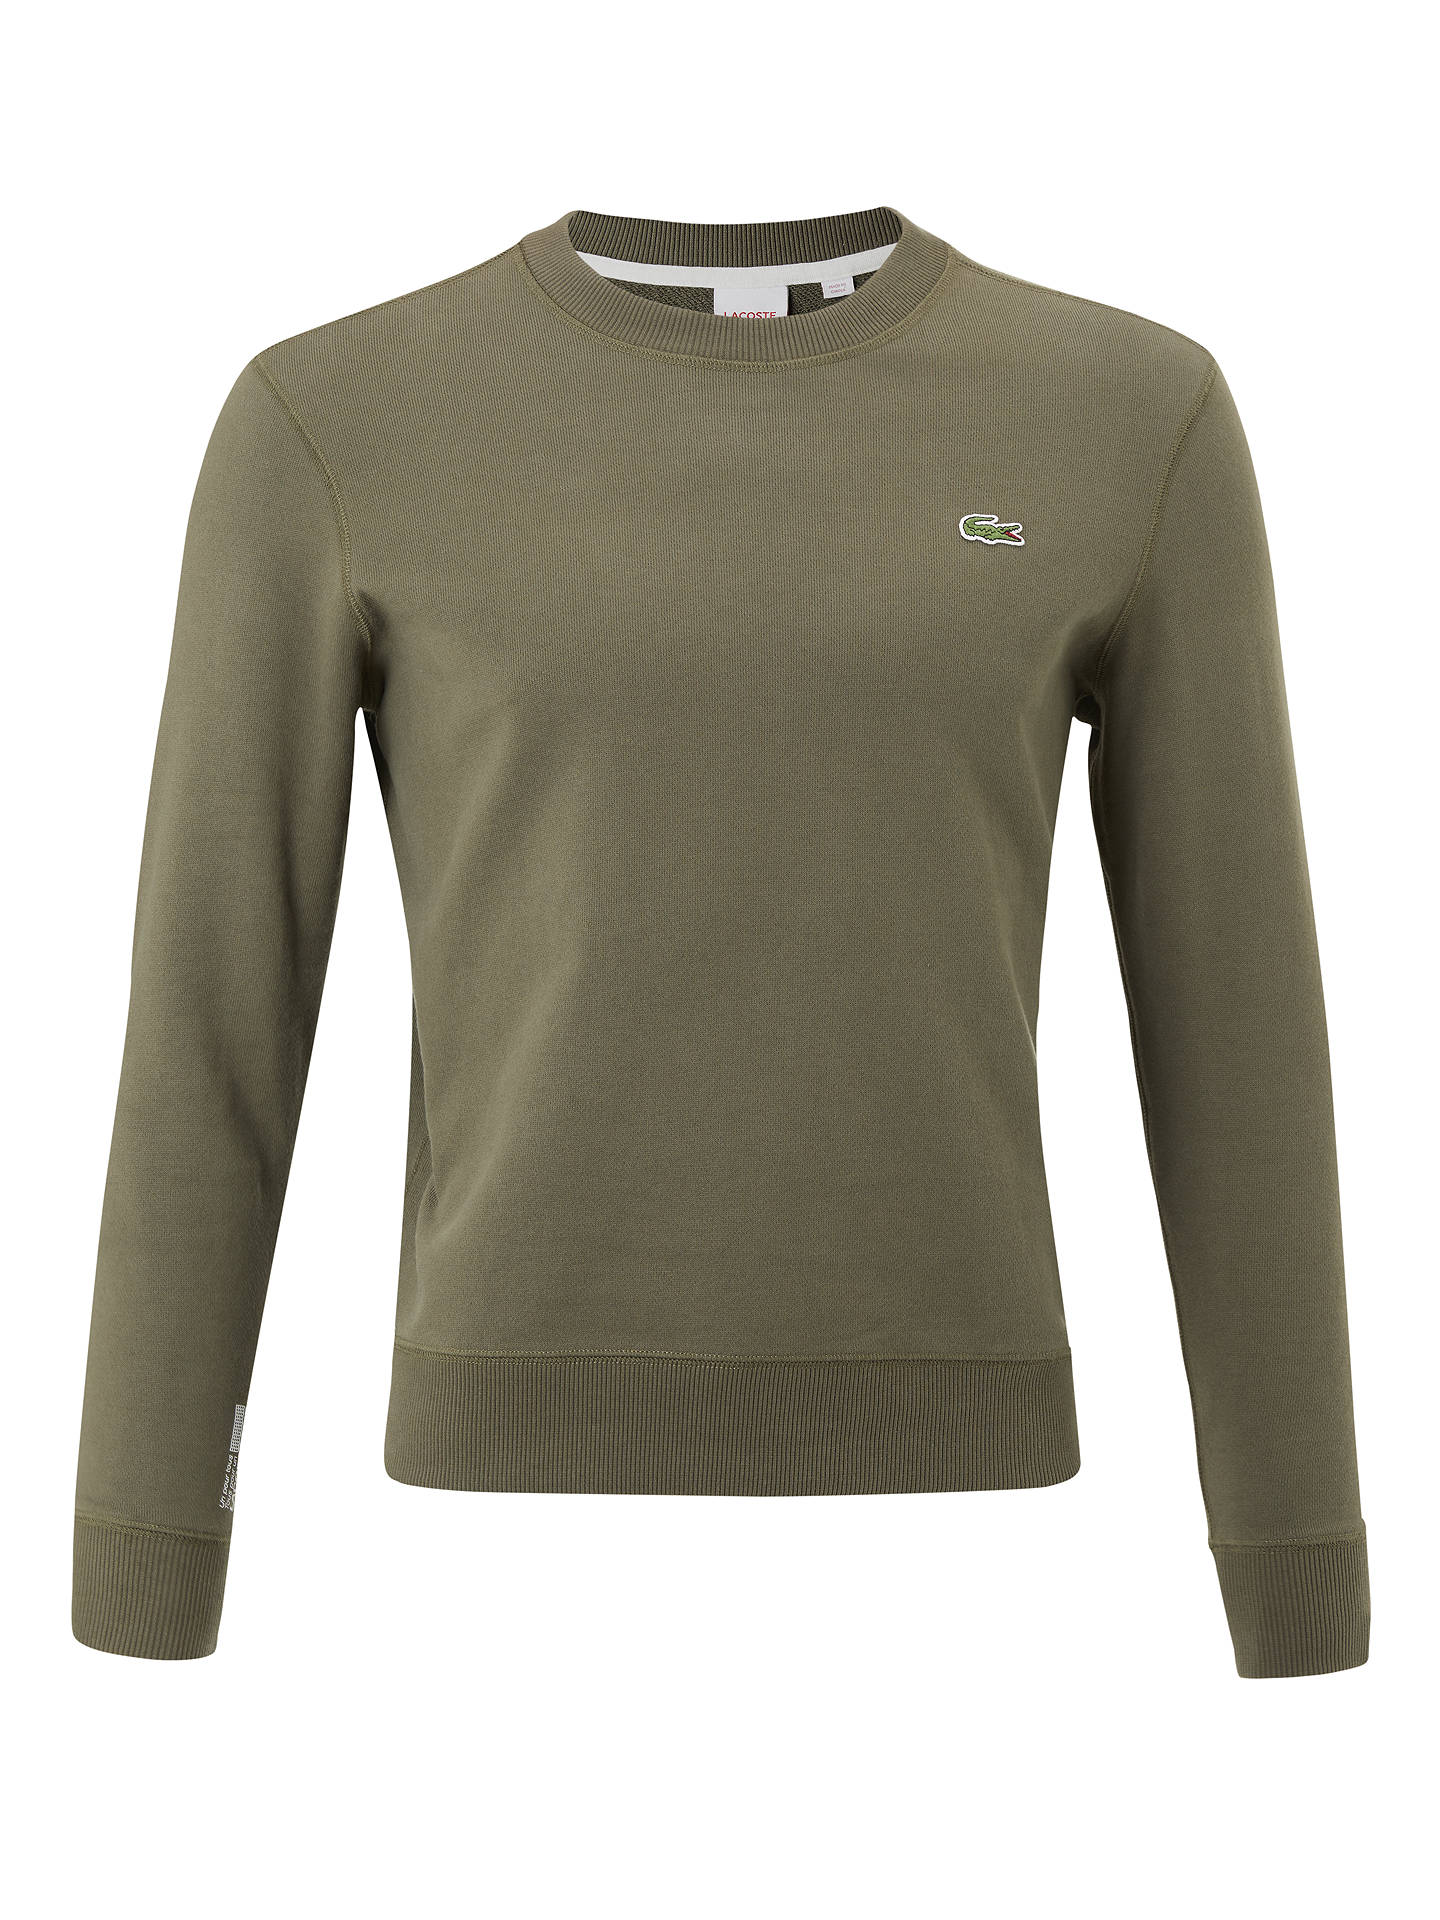 1012fa06 Lacoste LIVE Crew Neck Sweatshirt, Army Green at John Lewis & Partners